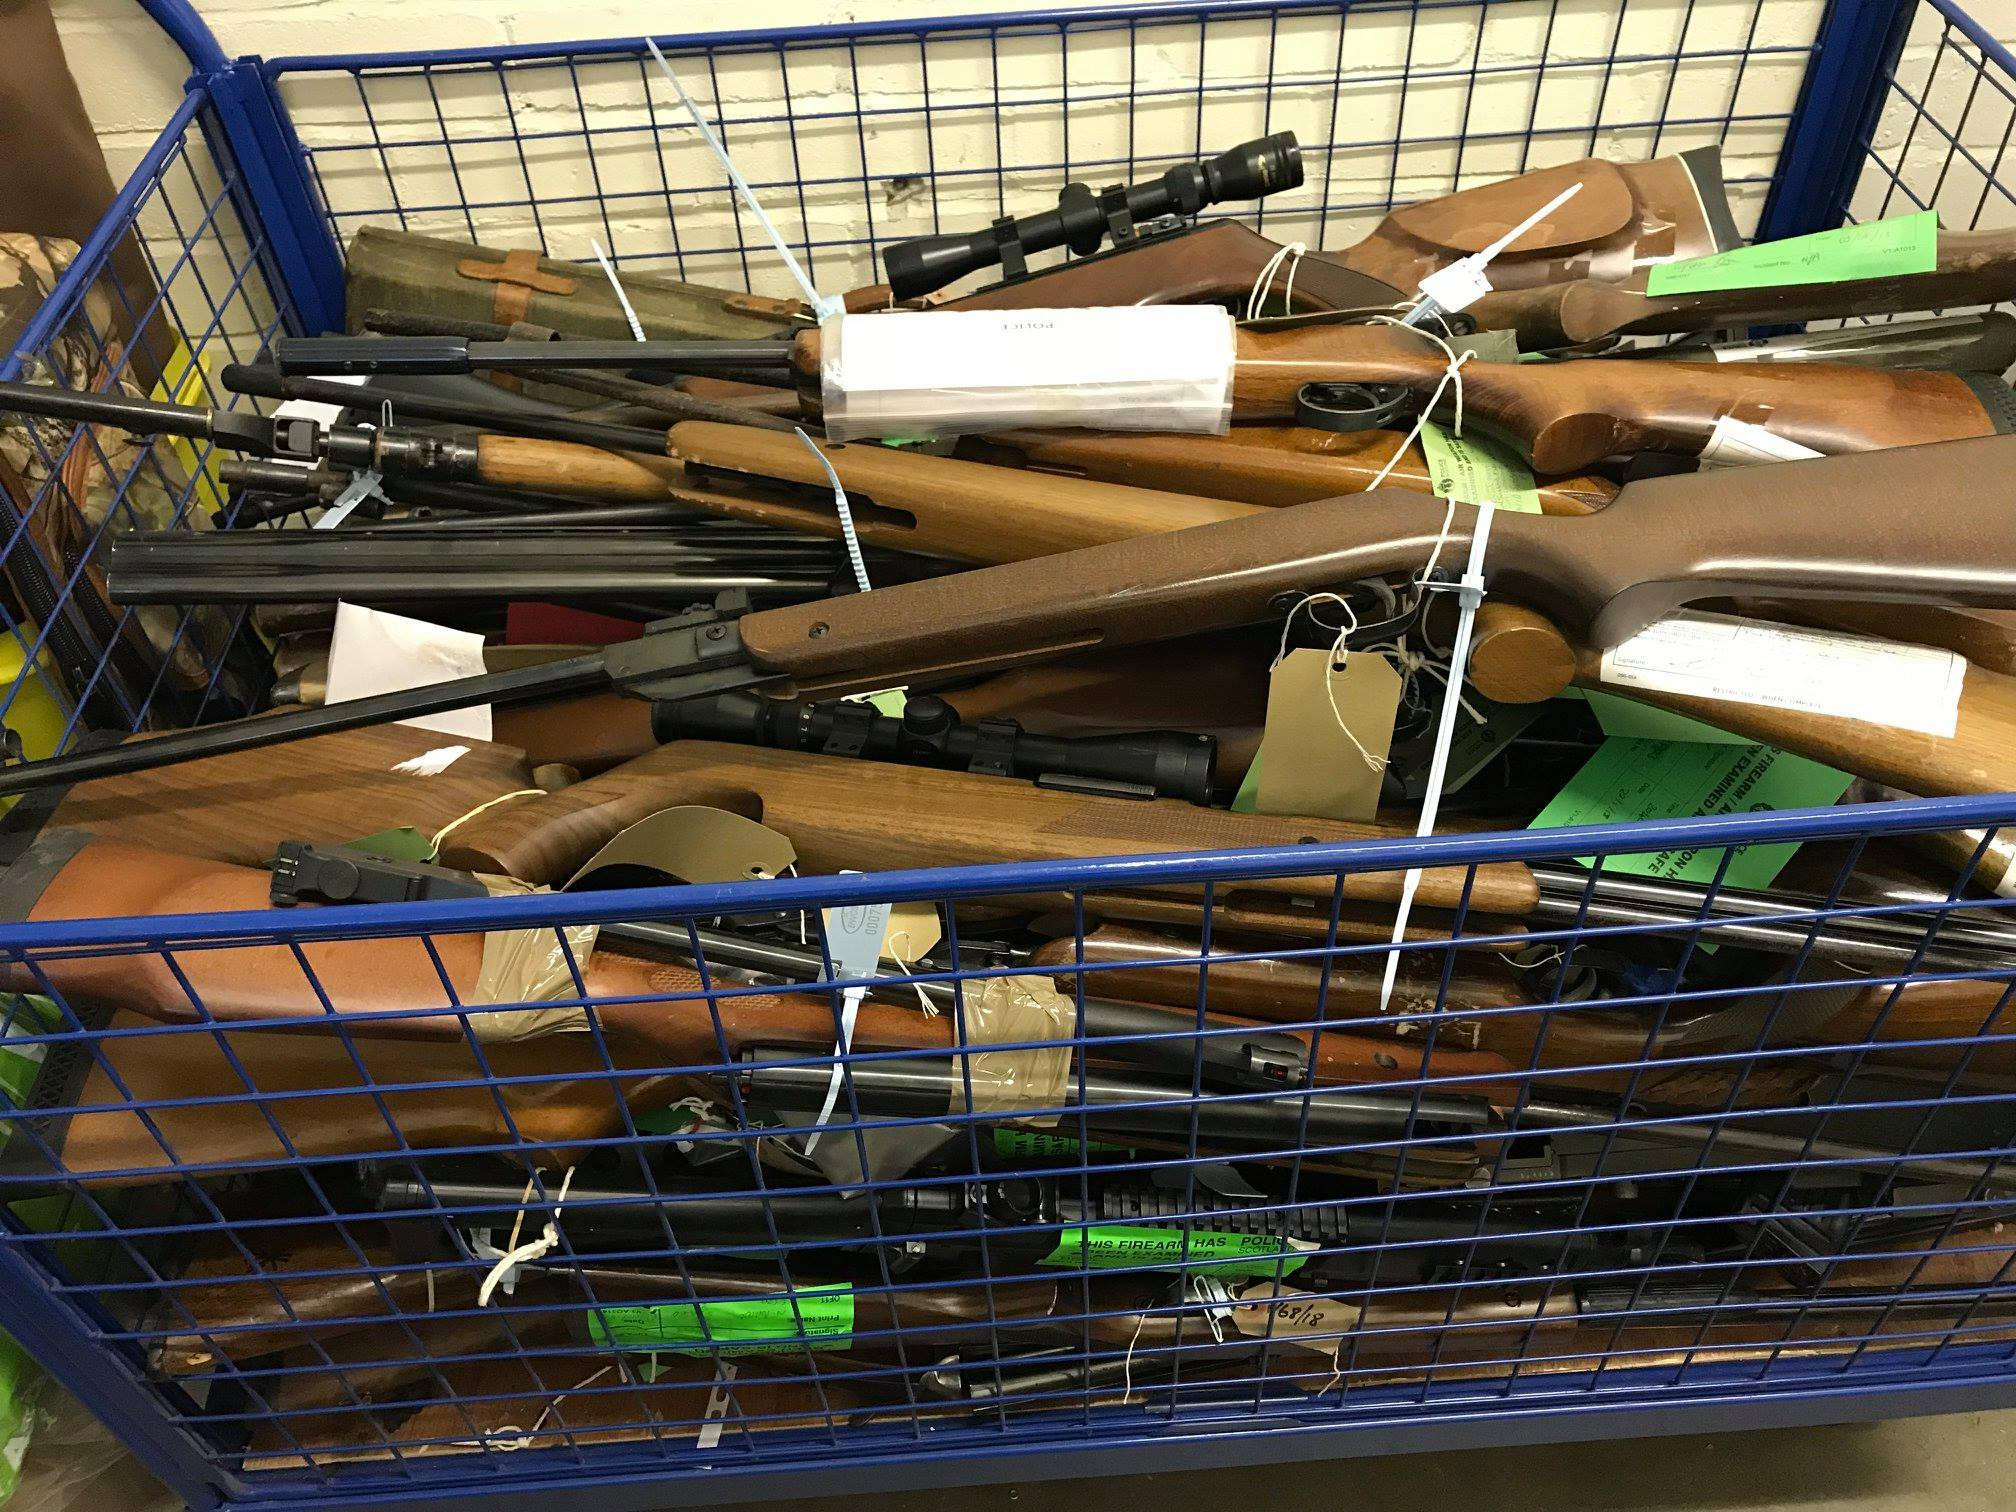 Residents across the region handed in a haul of 10 air guns, five shotguns, two rifles and five pistols since the #gunssurrender campaign began on Monday